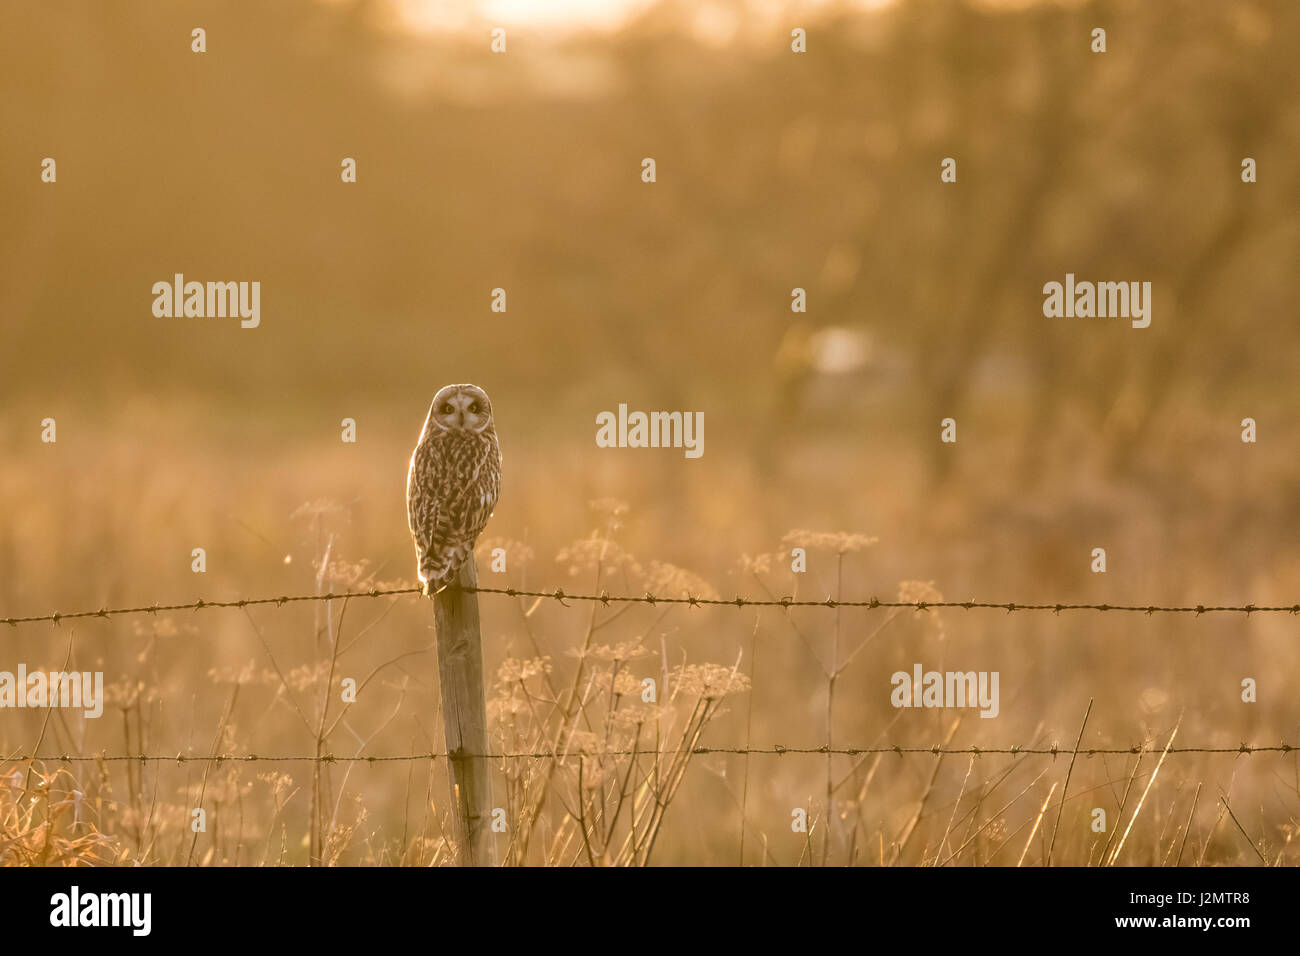 Short-eared Owl (Asio flammeus) perched on a barbed-wire fence post in winter sunset - Stock Image